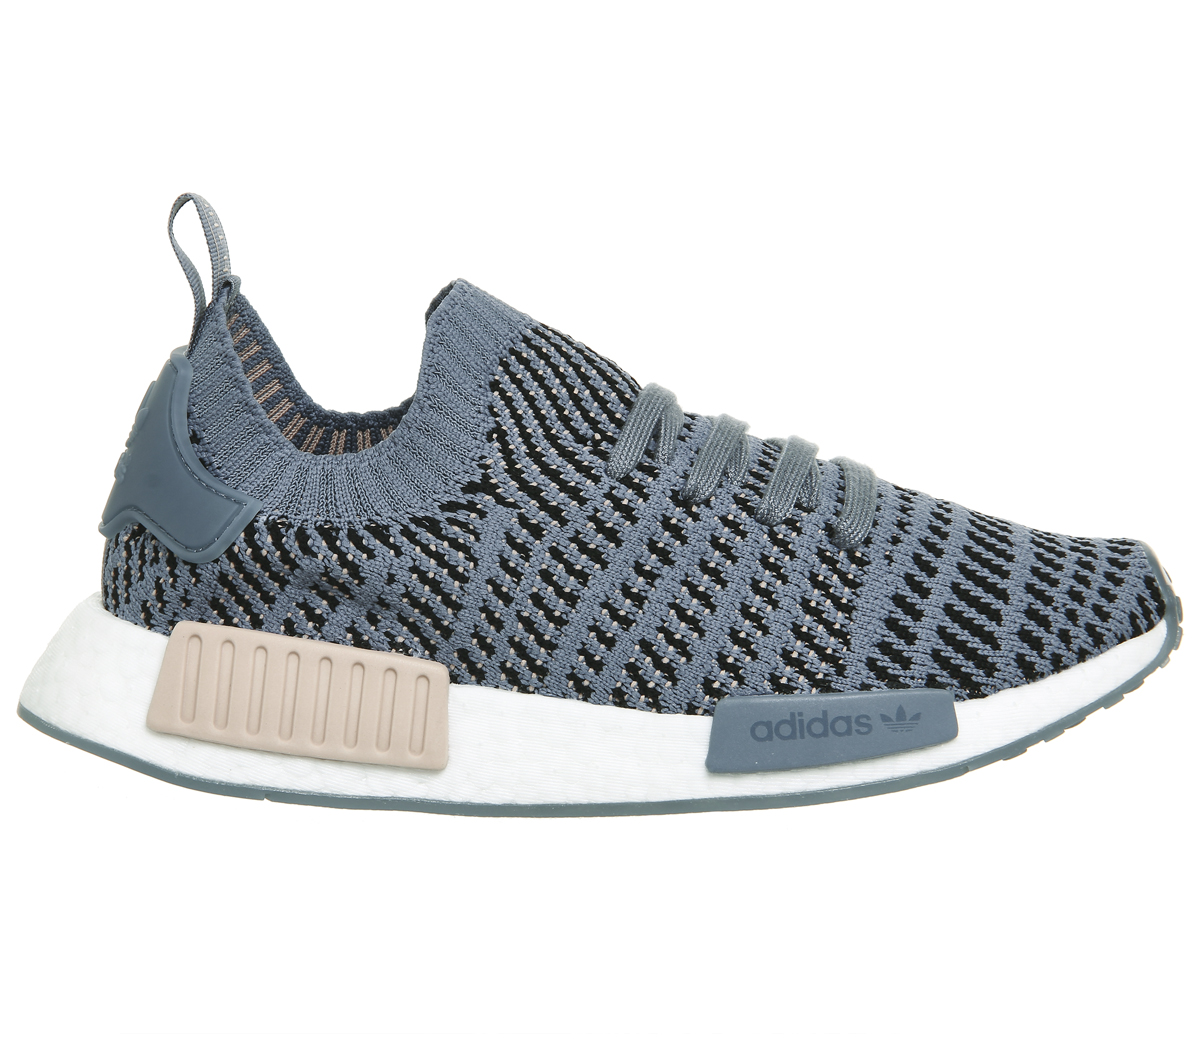 Womens ASH Adidas Nmd R1 Prime Knit Trainers RAW STEEL ASH Womens PEARL WHITE Trainers Shoe 568ffd